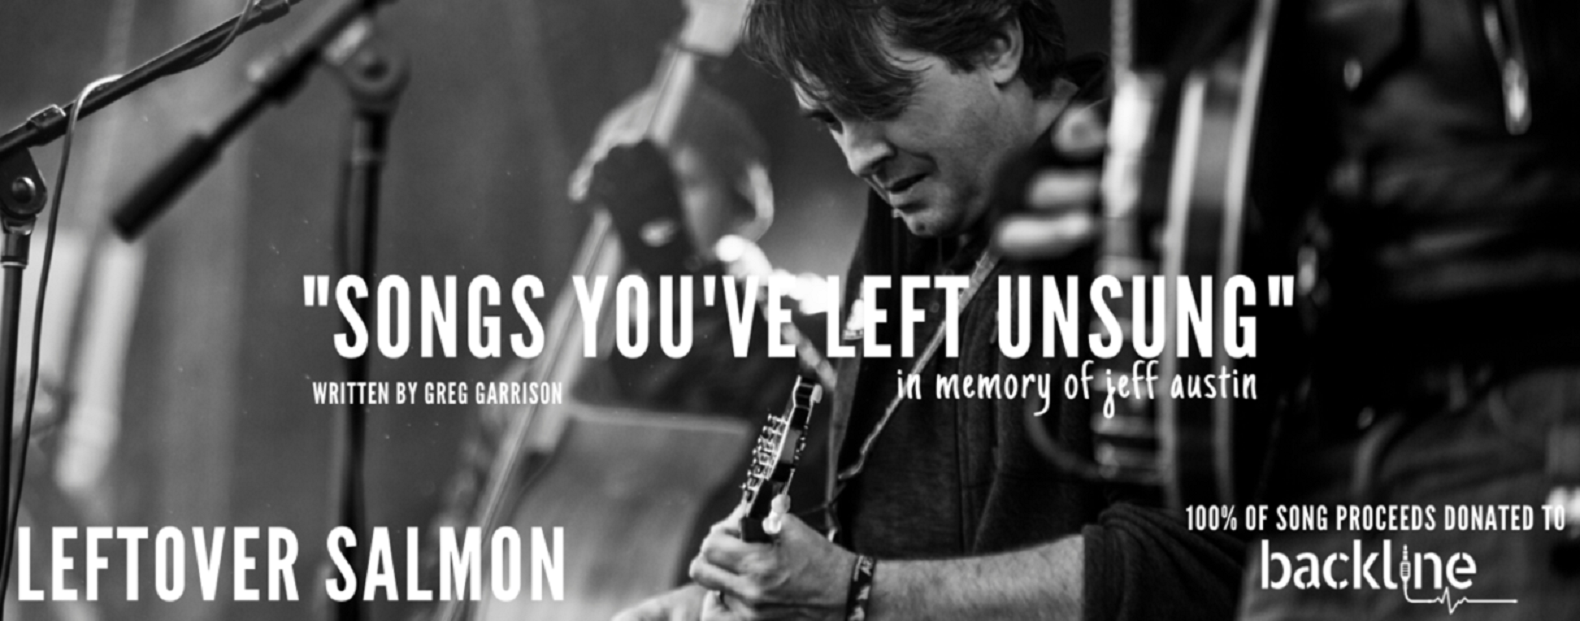 Leftover Salmon Releases Jeff Austin Tribute Song on Backline to Support Mental Health